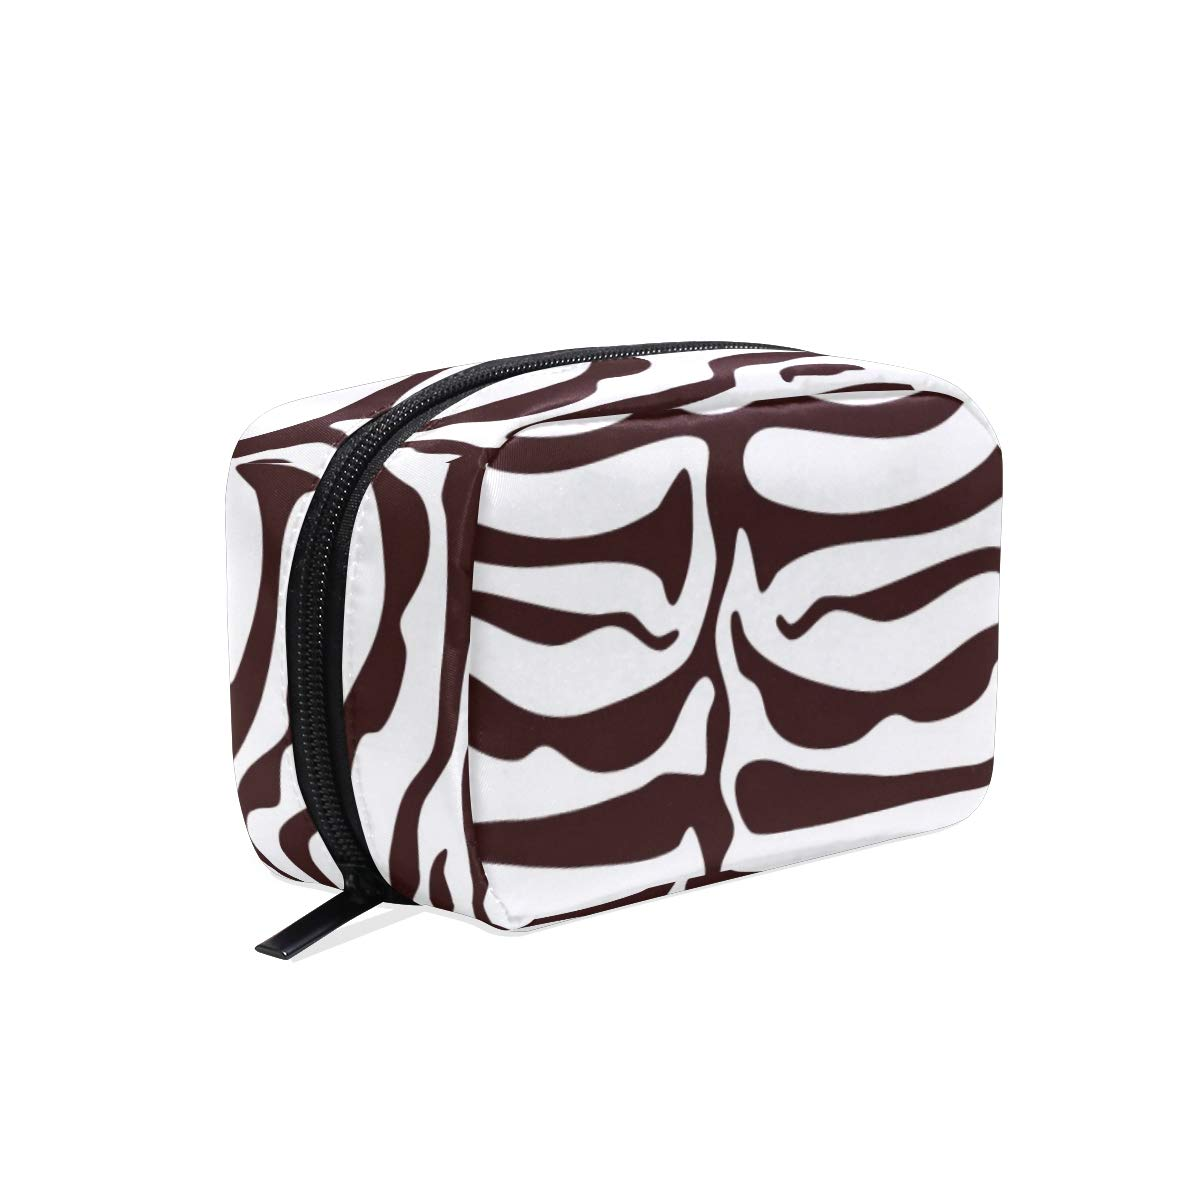 ILEEY Tiger Animal Stripes Cosmetic Pouch Clutch Makeup Bag Travel Organizer Case Toiletry Pouch for Women